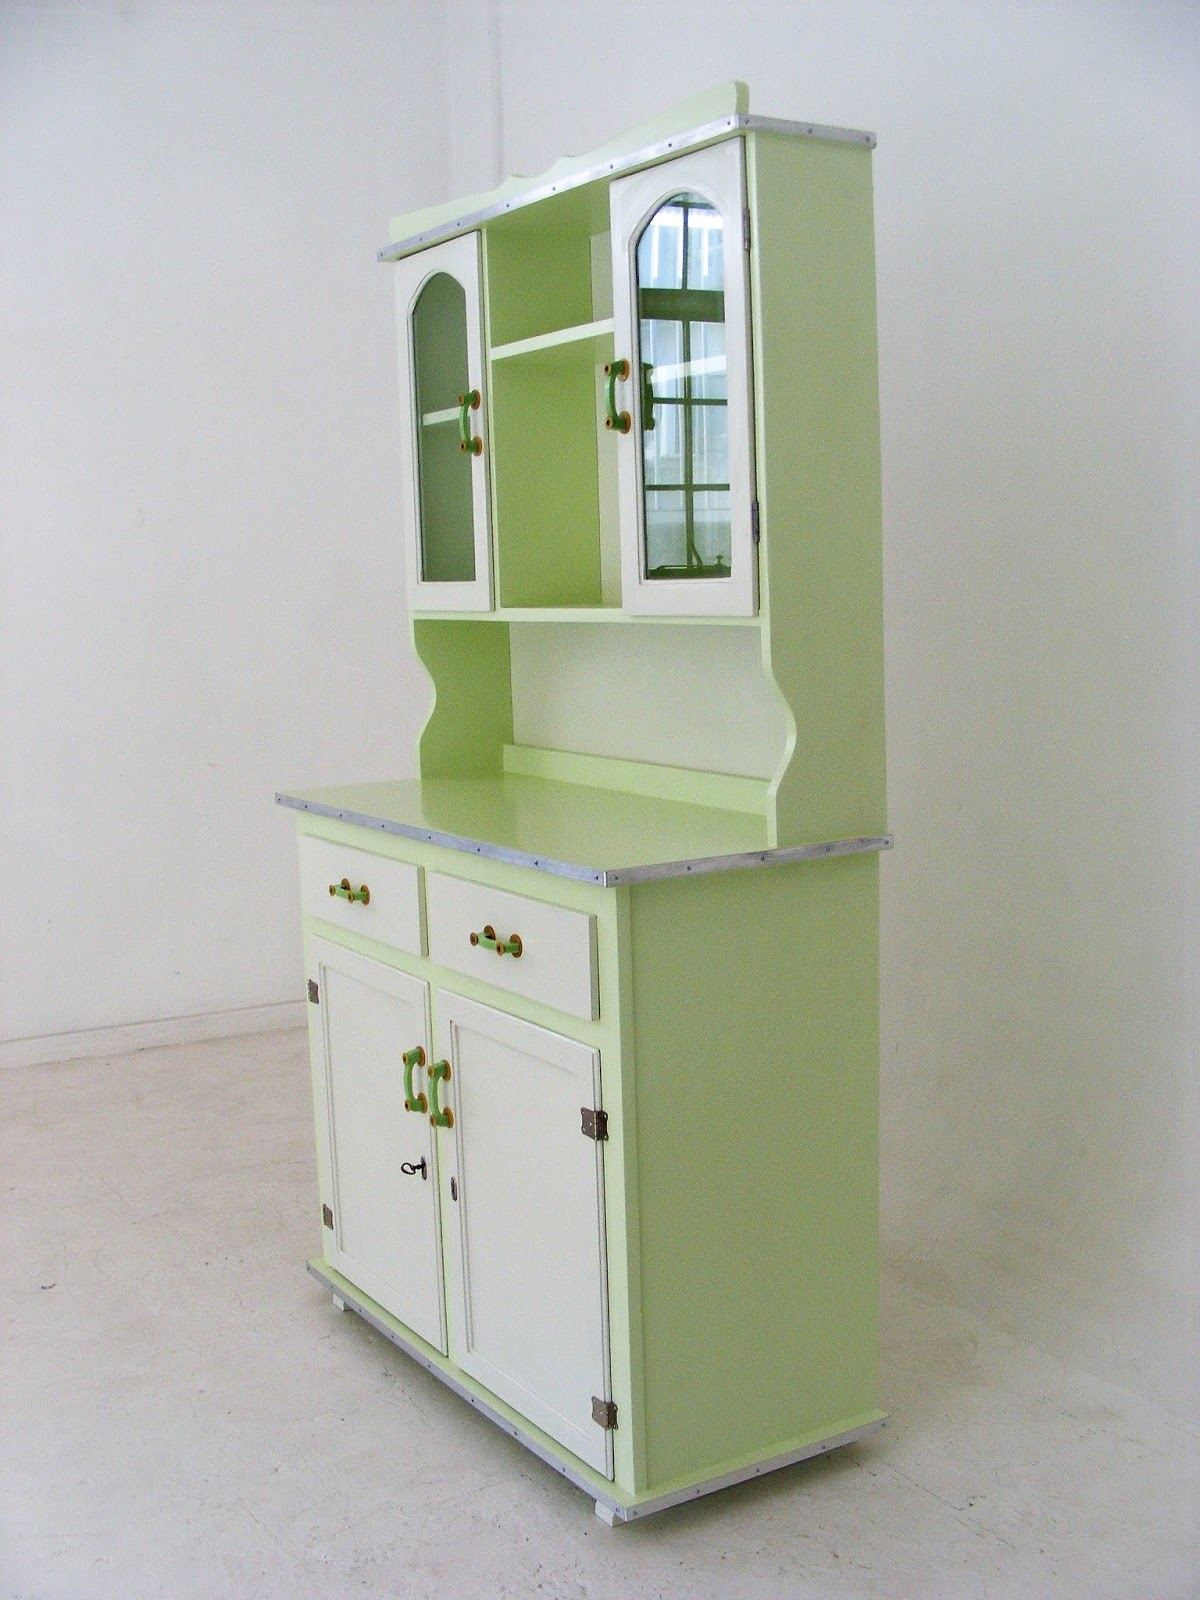 Vamp Furniture A Small Vintage Kitchen Dresser At Vamp 27 May 2019